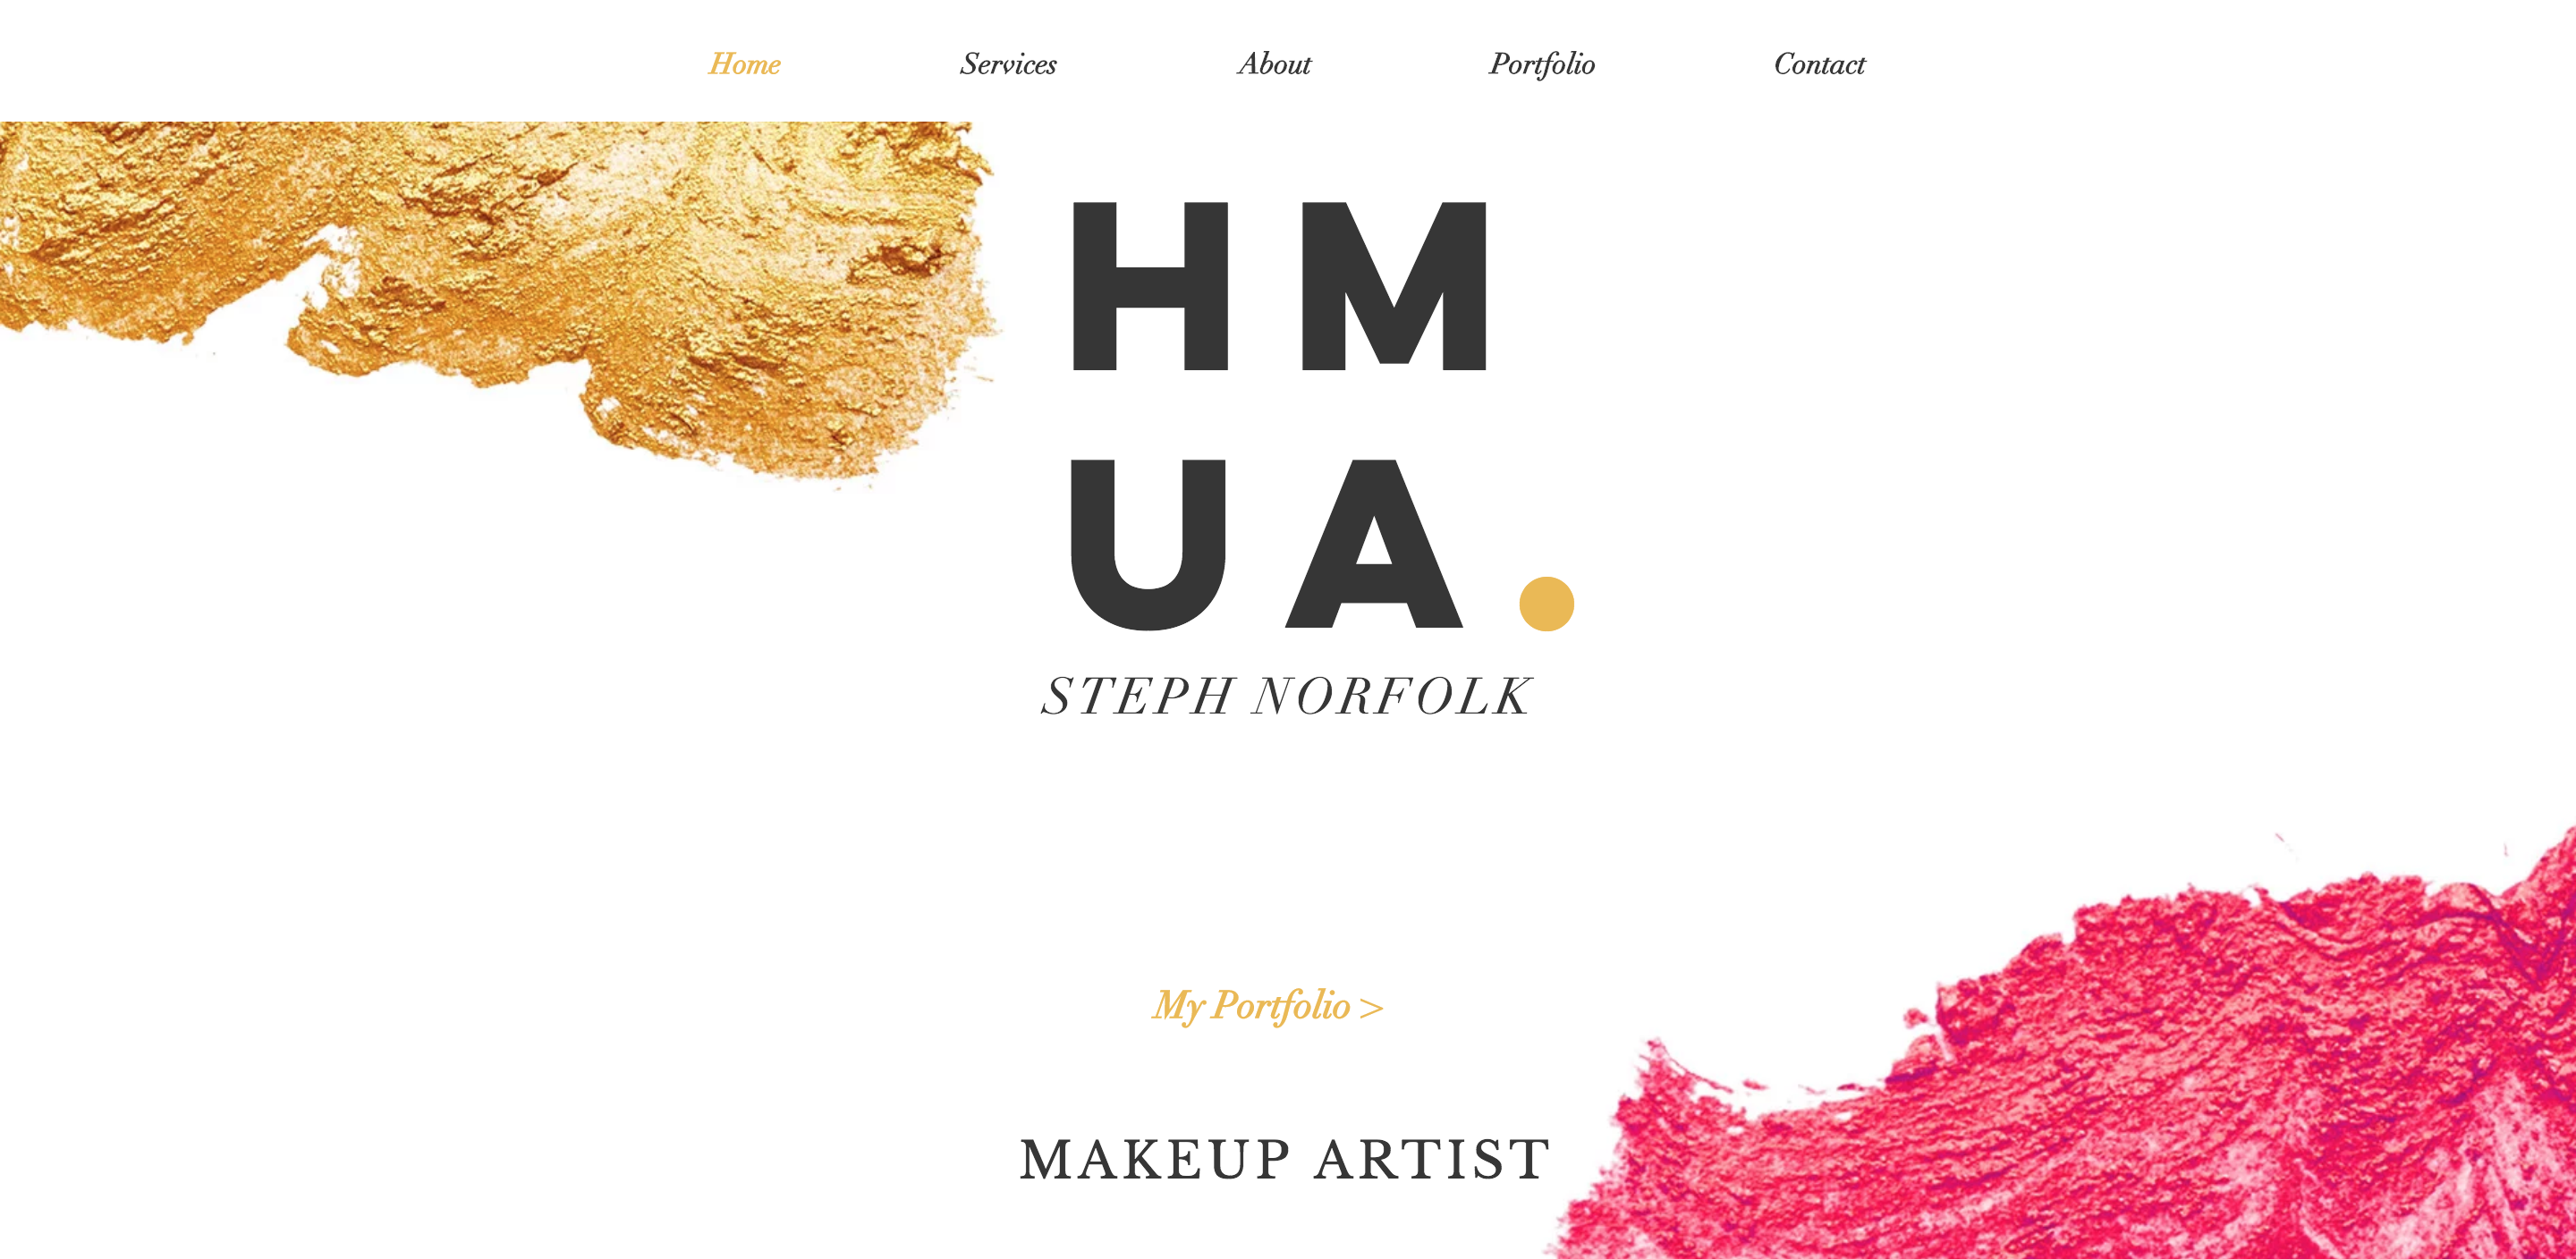 HMUA internet marketing web design